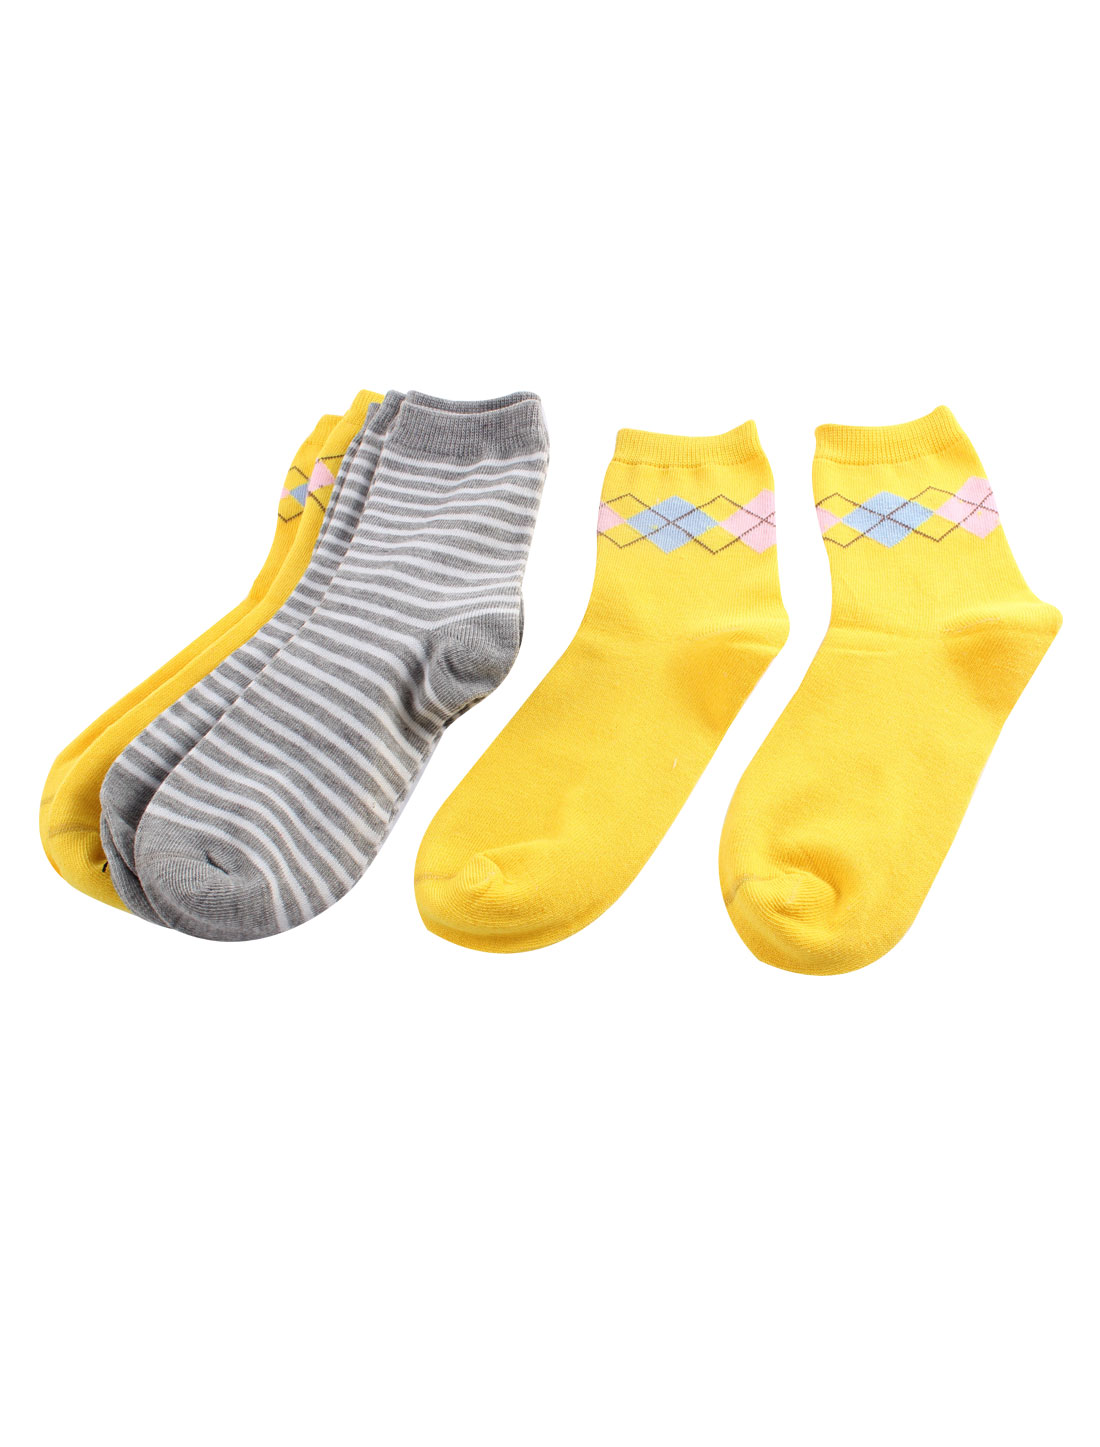 5 Pairs Yellow Gray Argyle Stripes Elastic Cotton Blends Ankle High Hosiery Socks for Lady